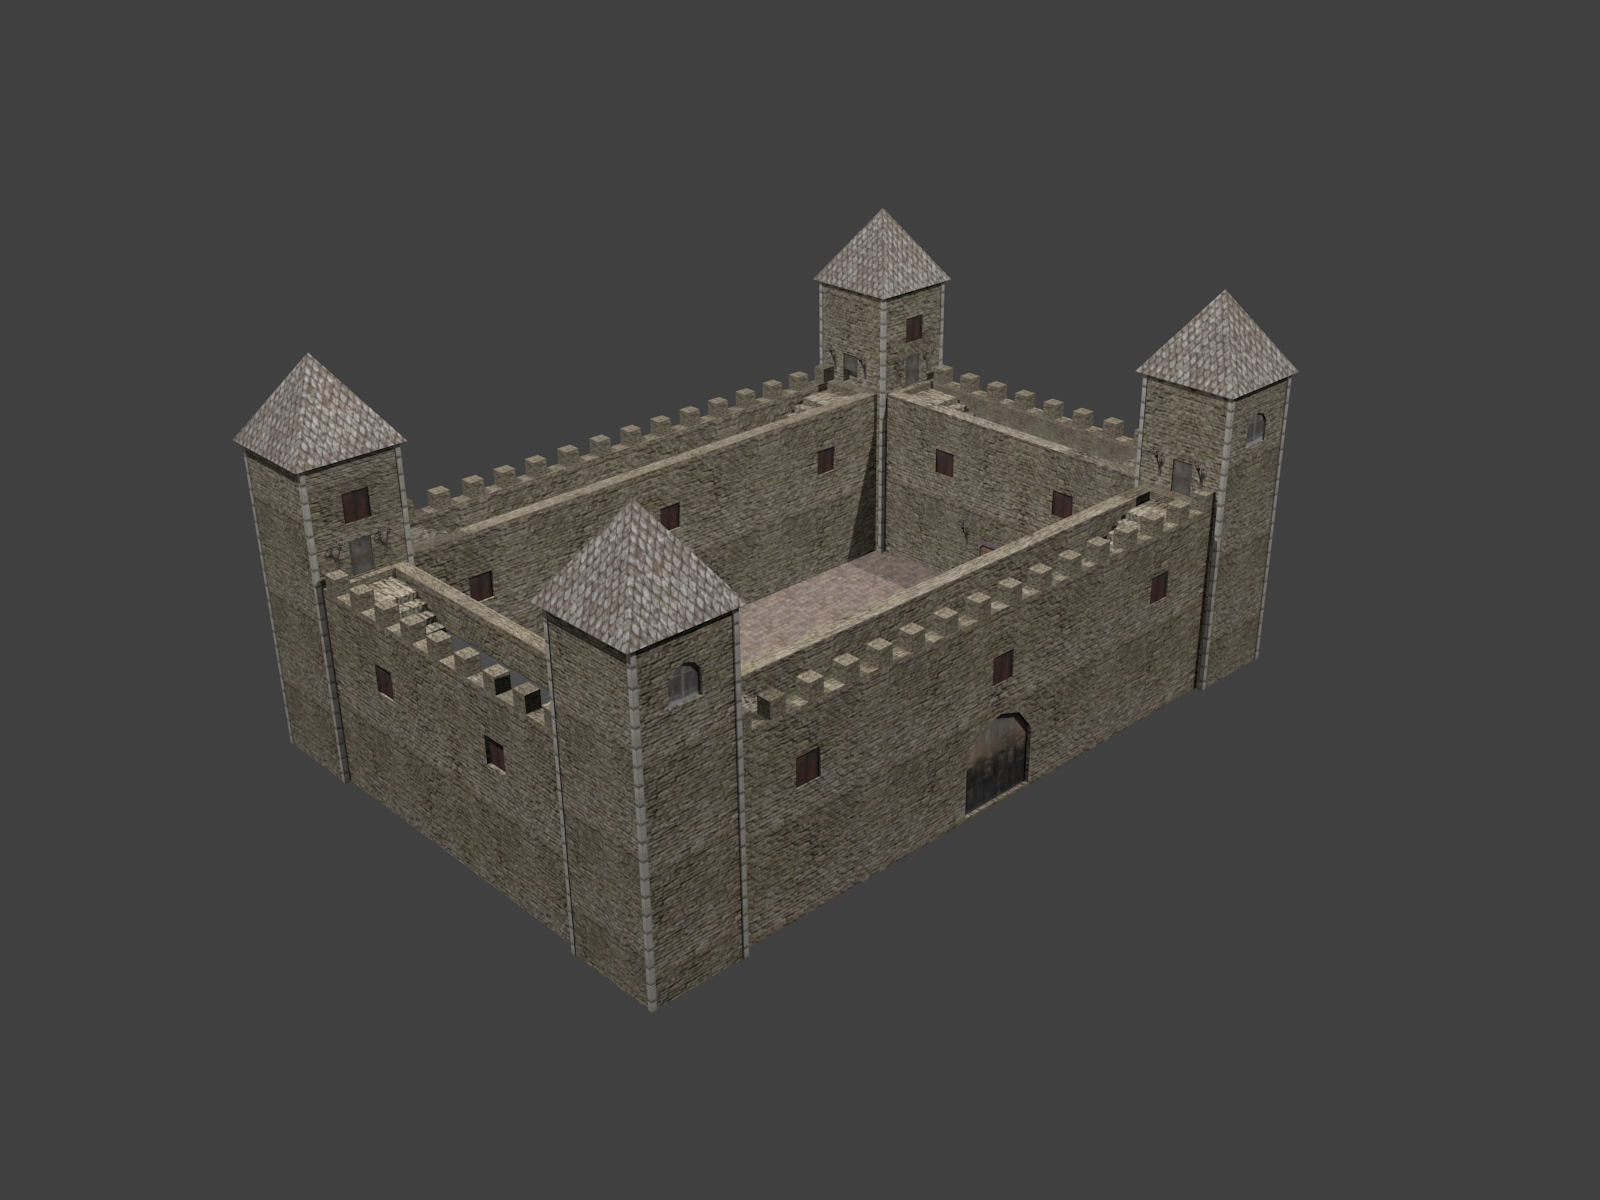 fortress low poly 3d model 3ds 164096